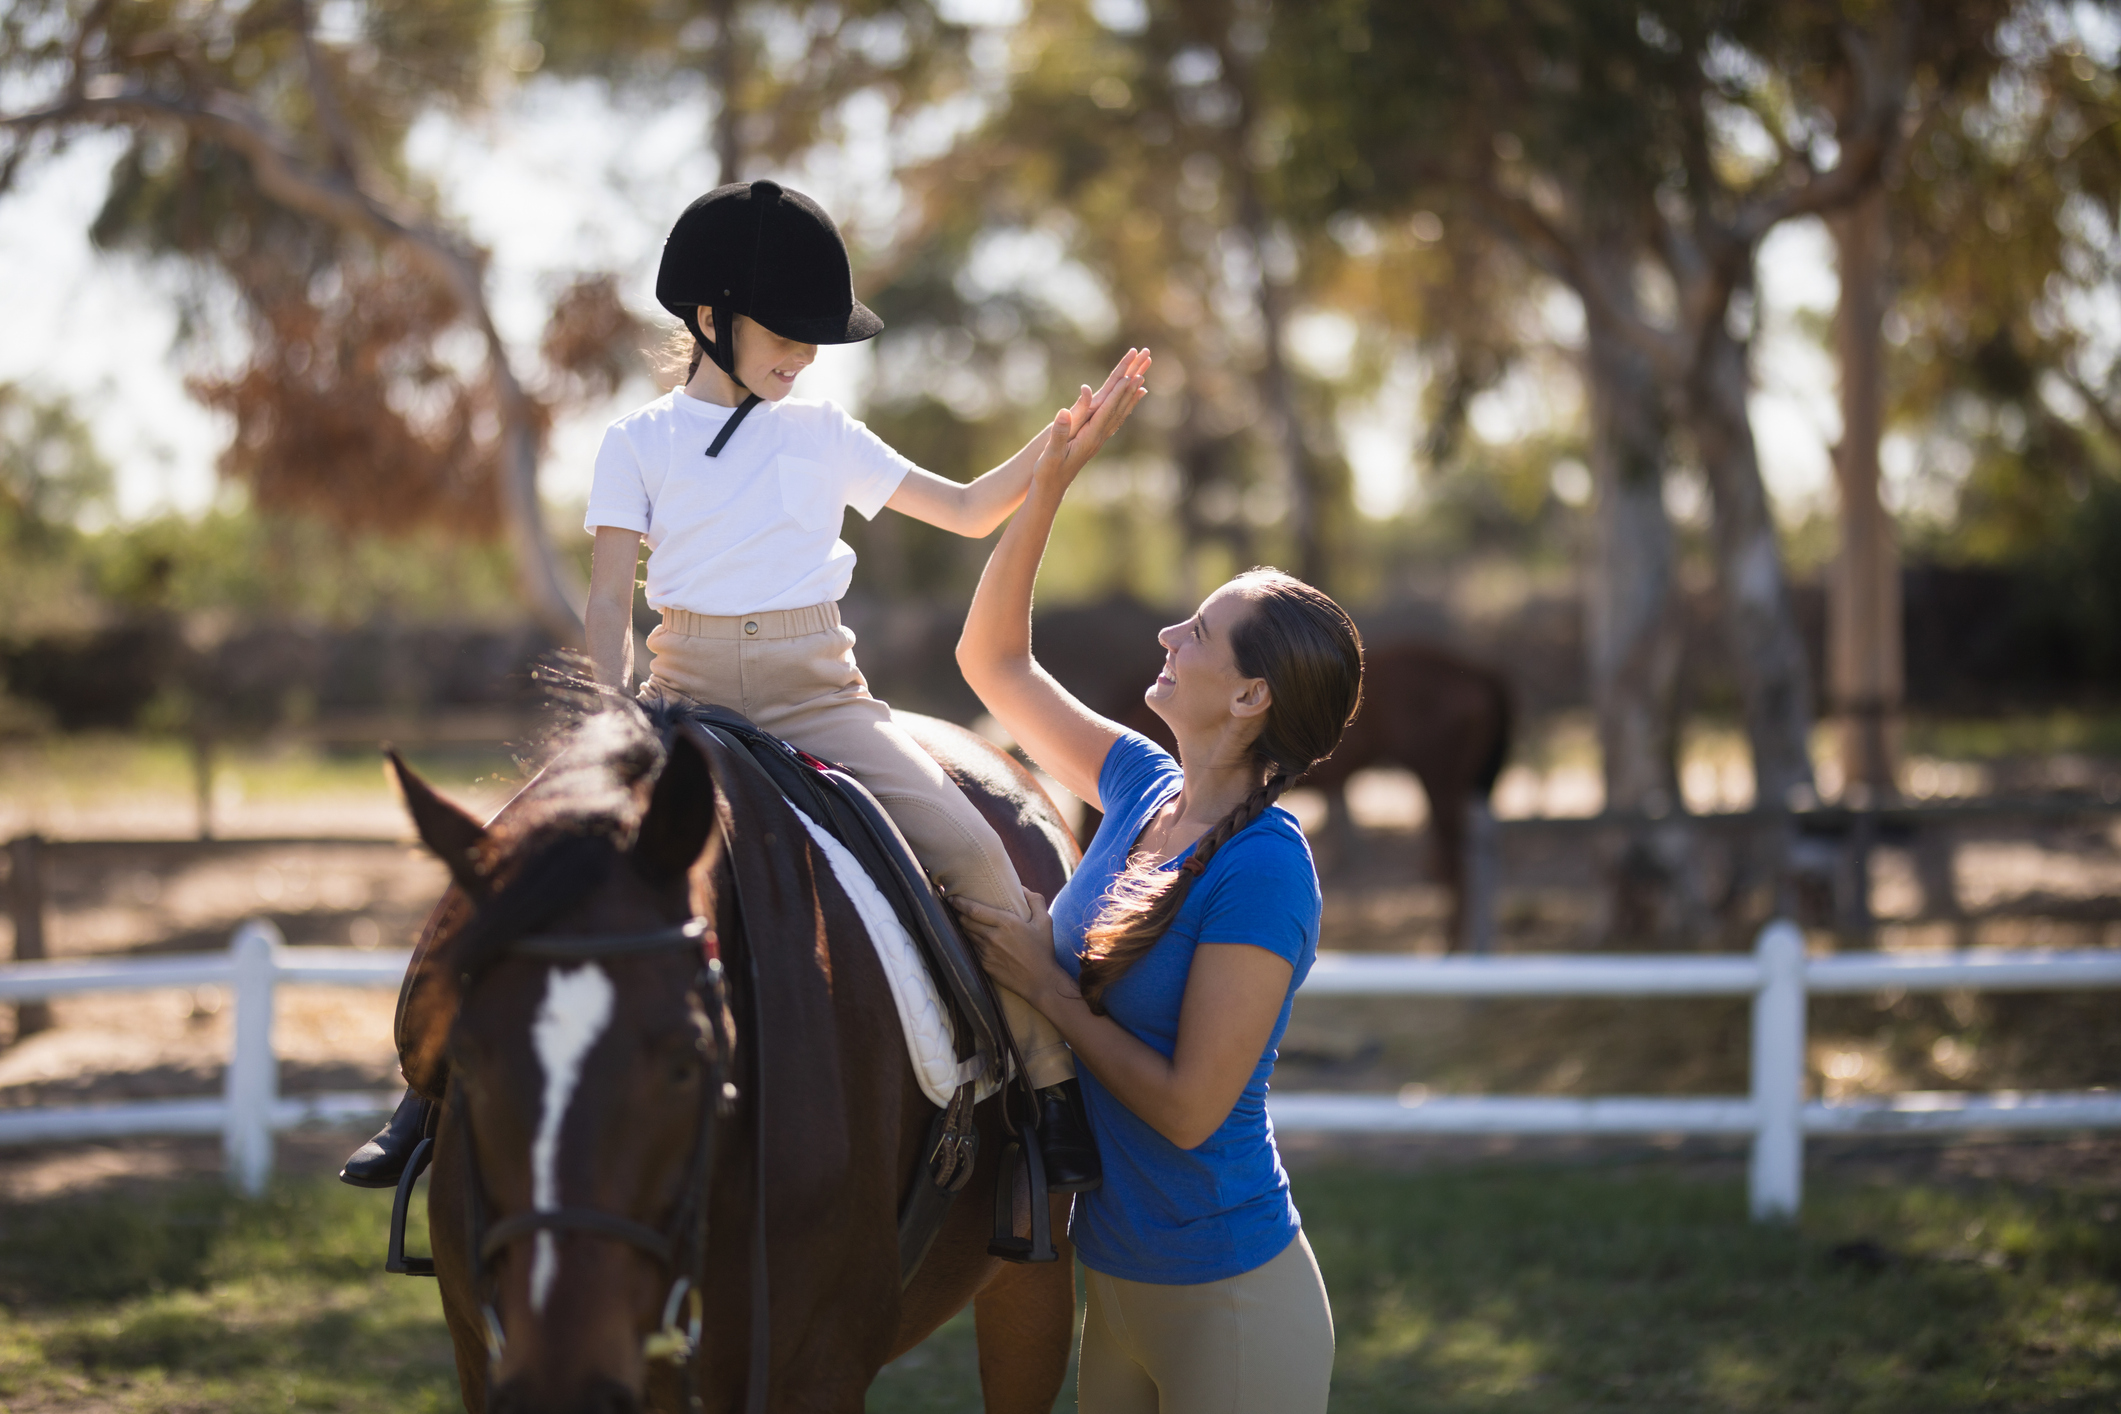 Child,fully prepared for a horse riding, gives a high five to a women